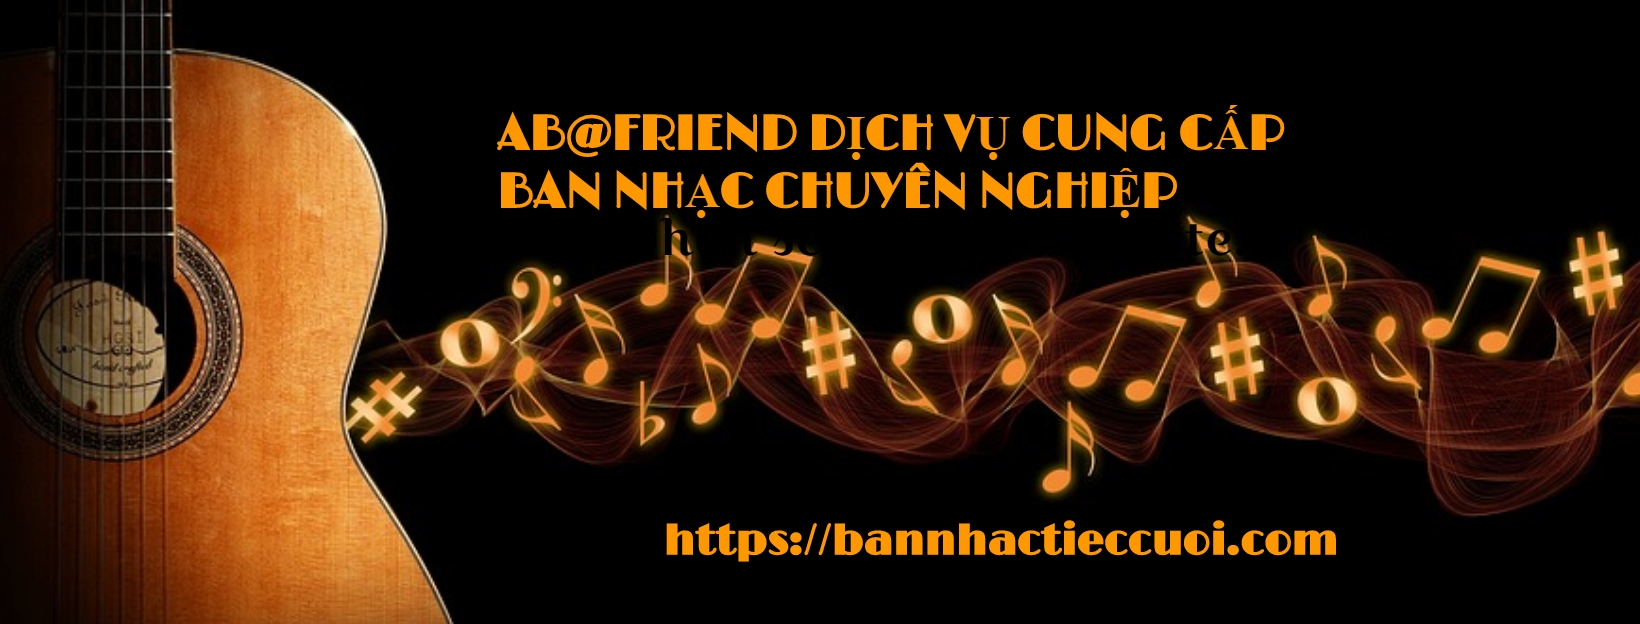 AB@Friend Music Banner 003